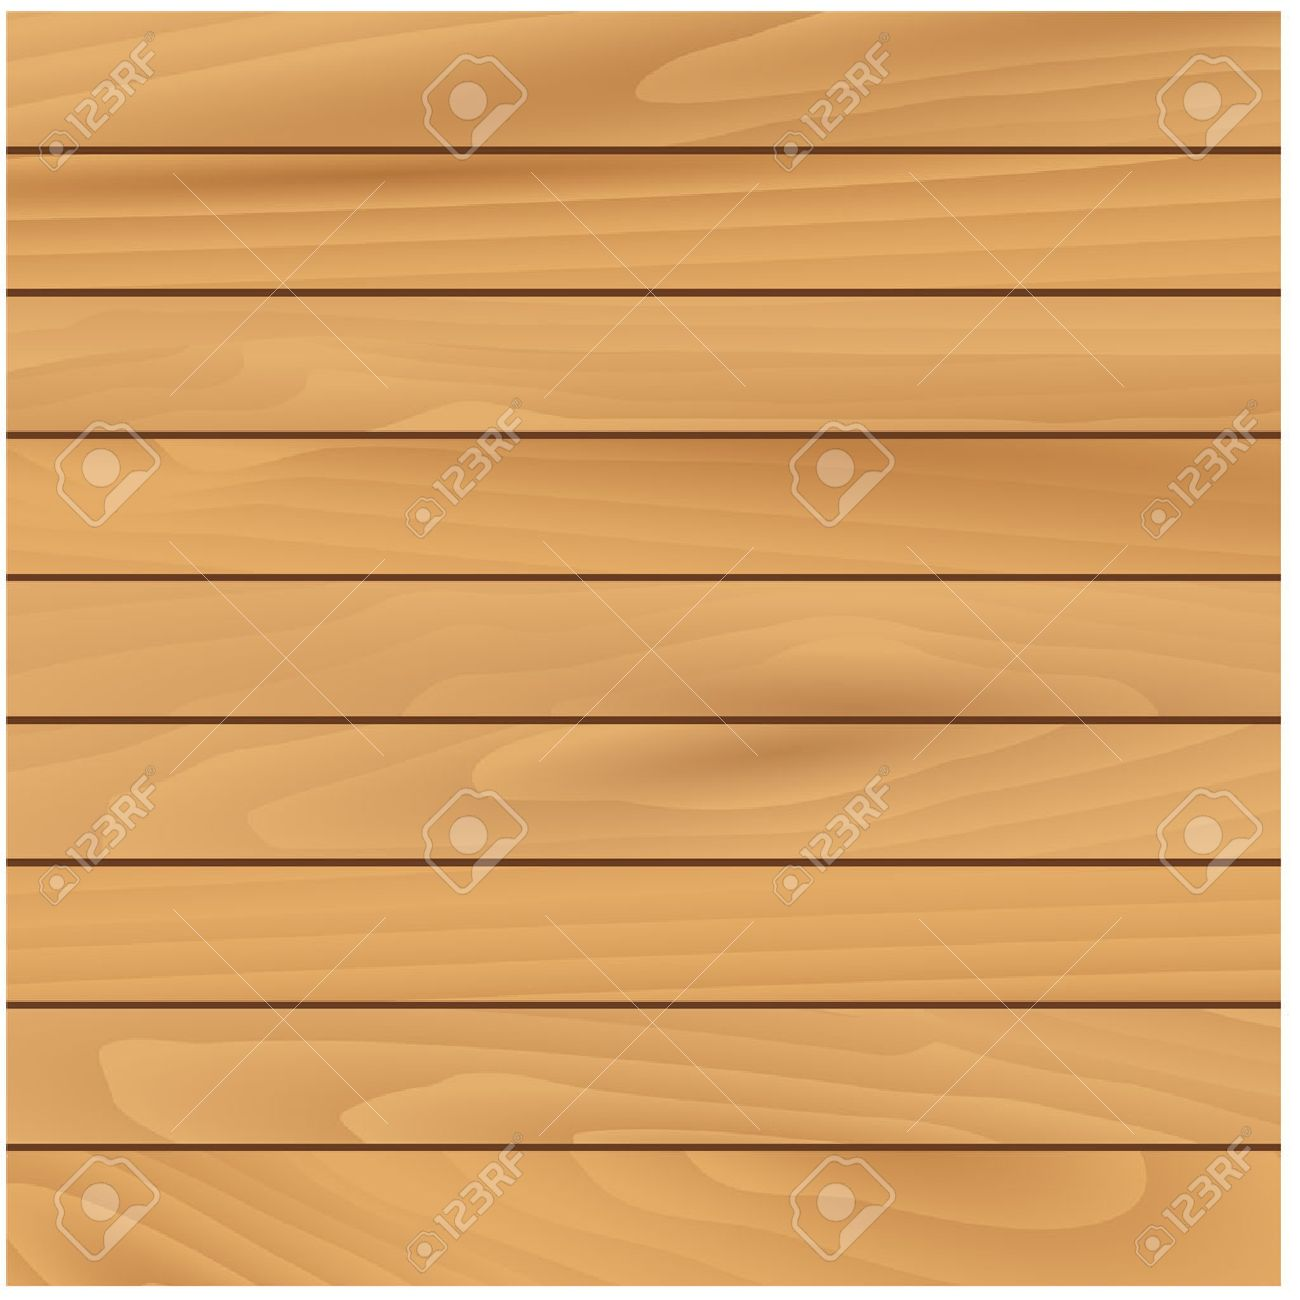 Light wooden texture natural background with narrow horizontal pine panels. For interior or construction design usage - 51156783